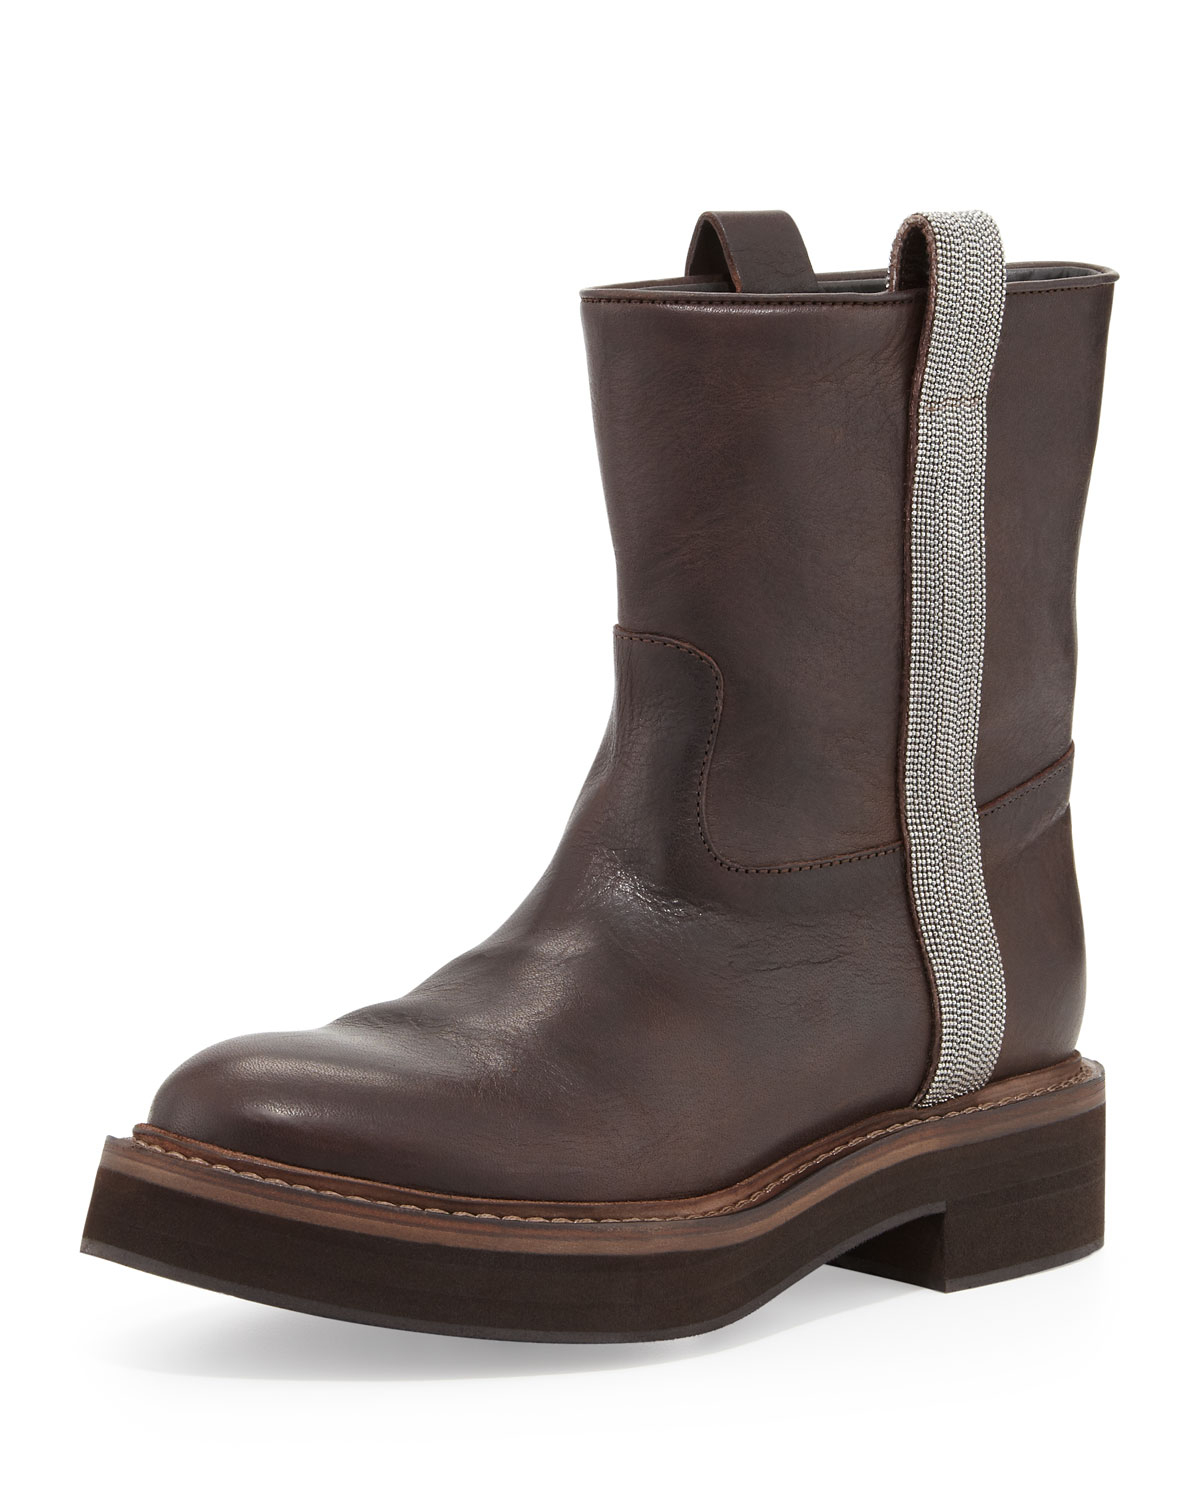 Brunello cucinelli Flat Ankle Boot With Ball-chain Trim in Brown ...